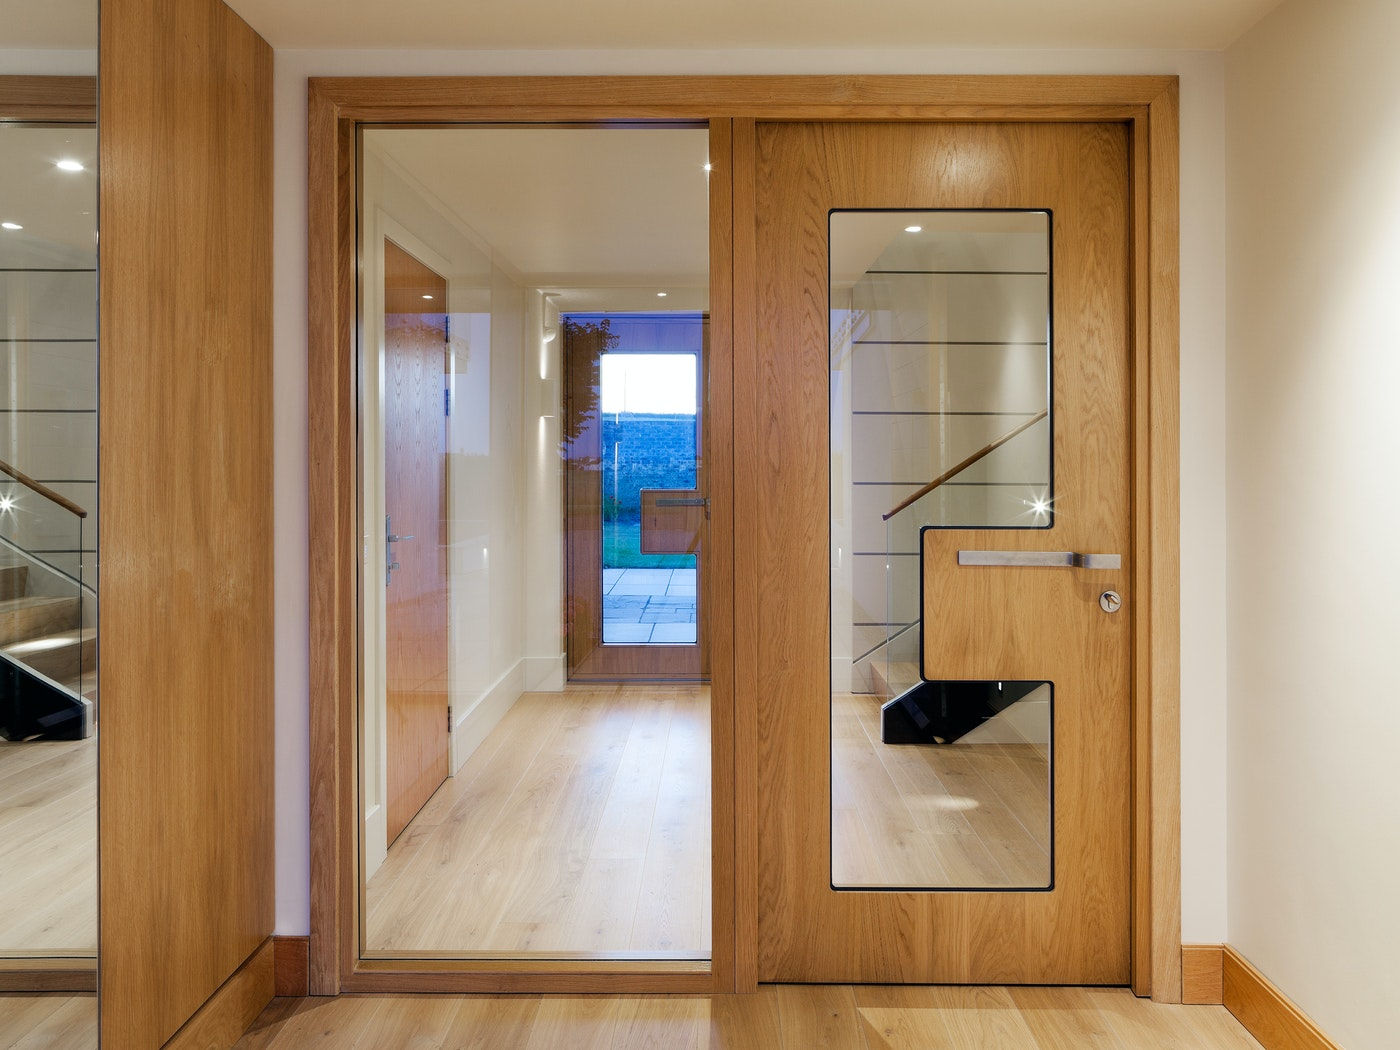 And with internal glazed doors in the same design & finish